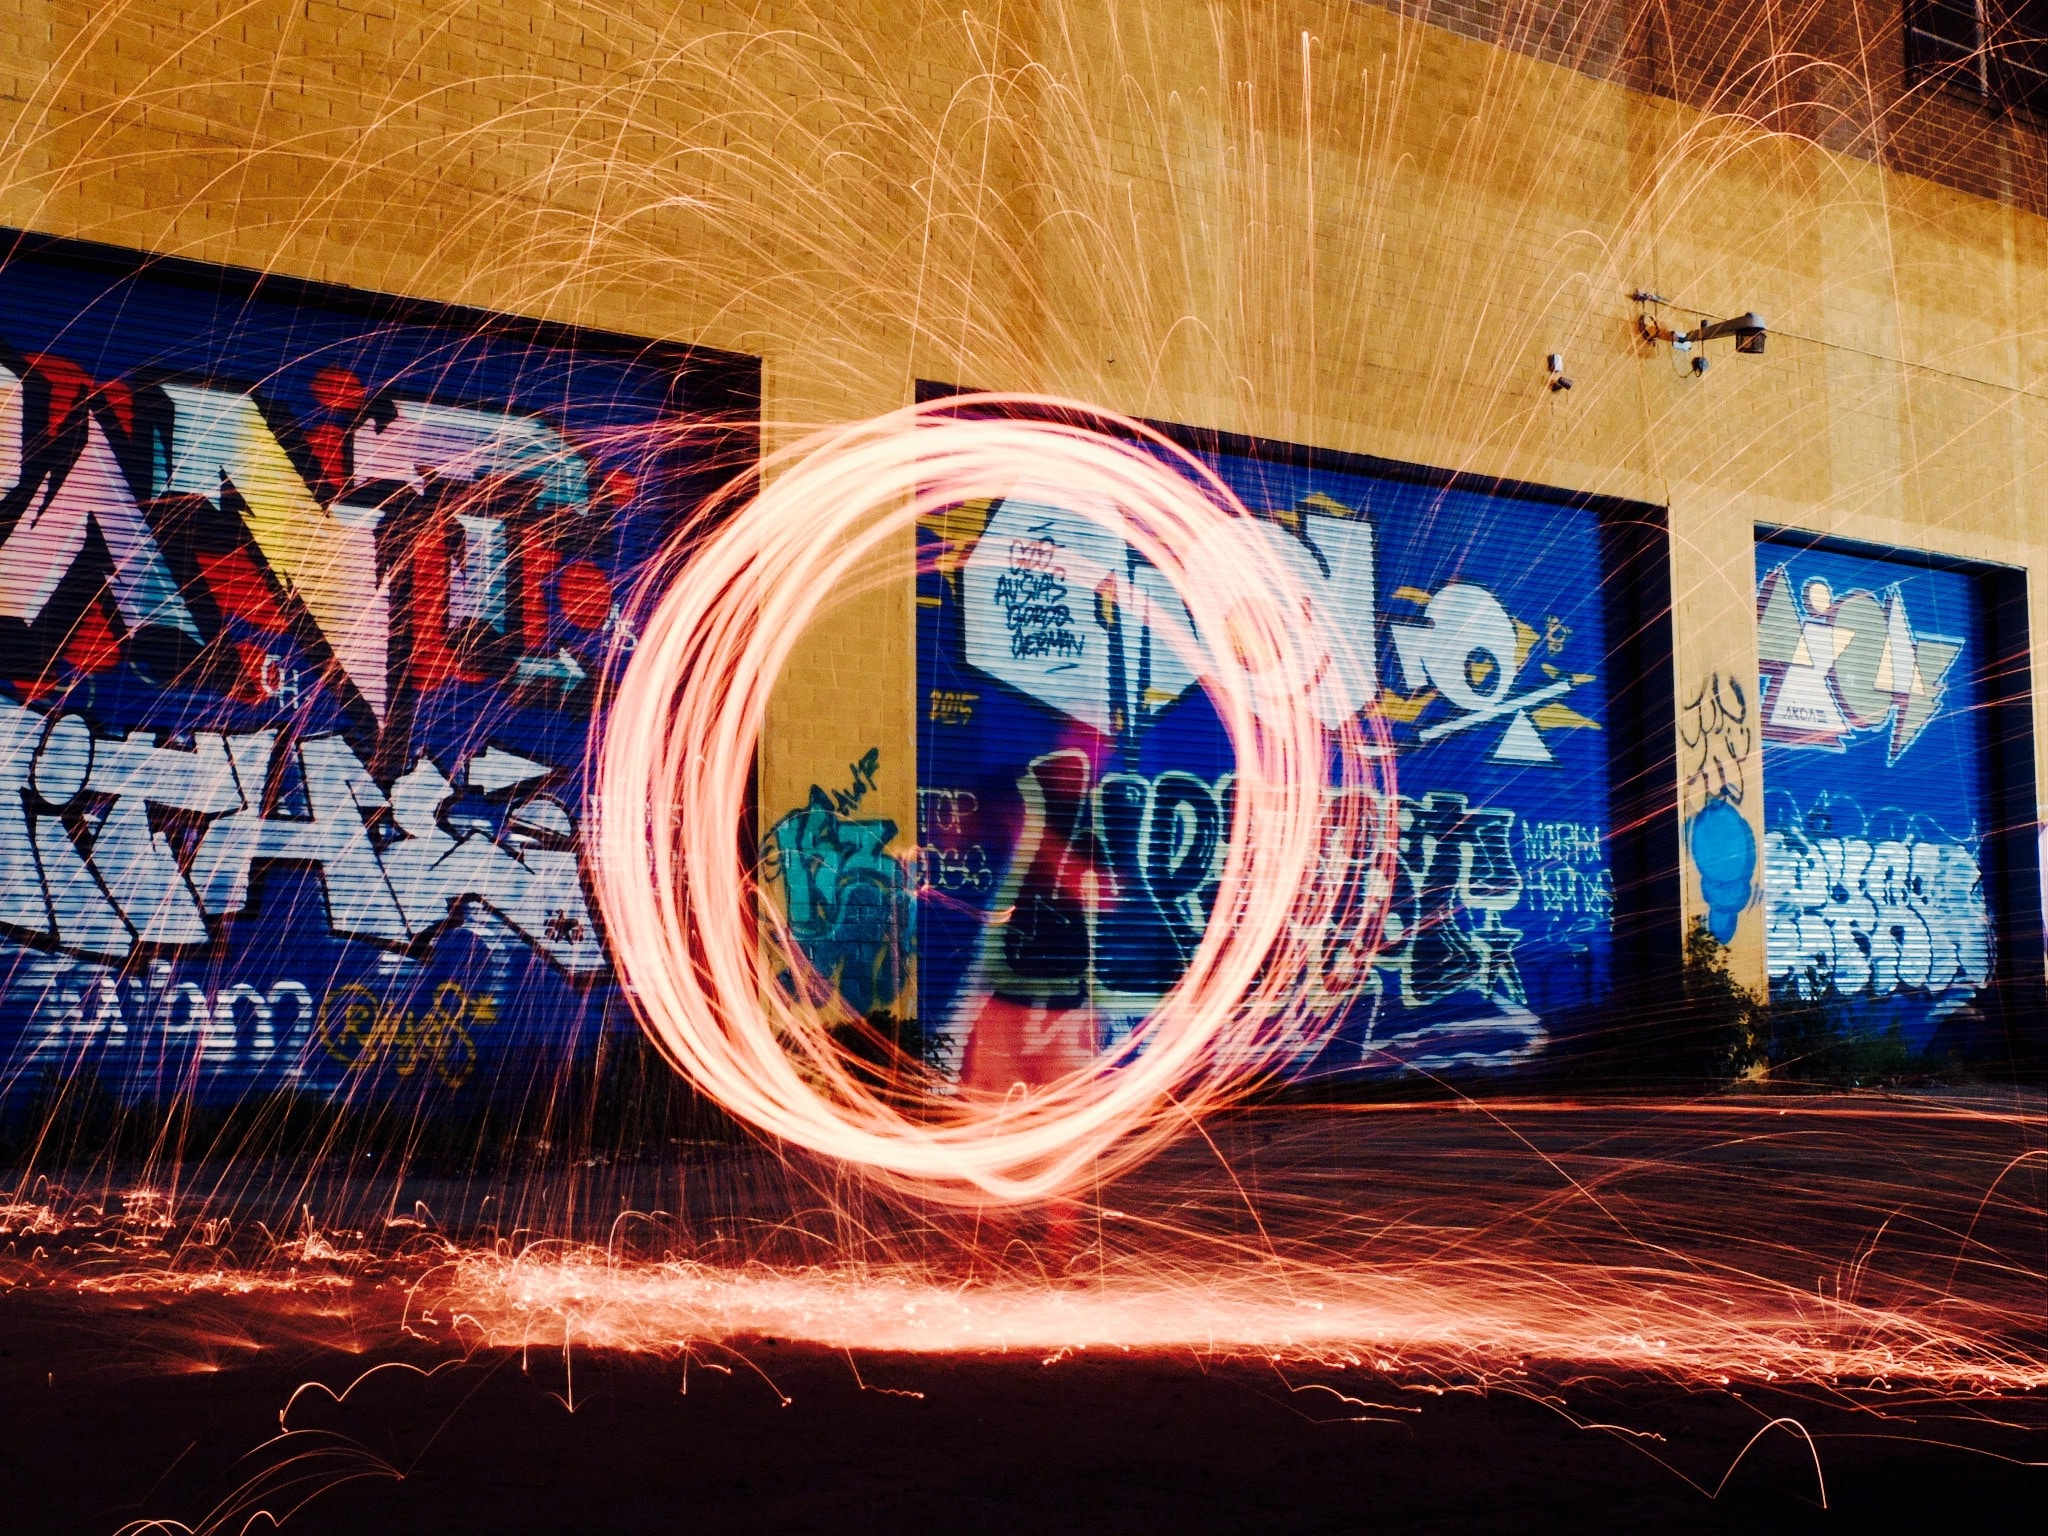 O made out of sparks in front of graffiti